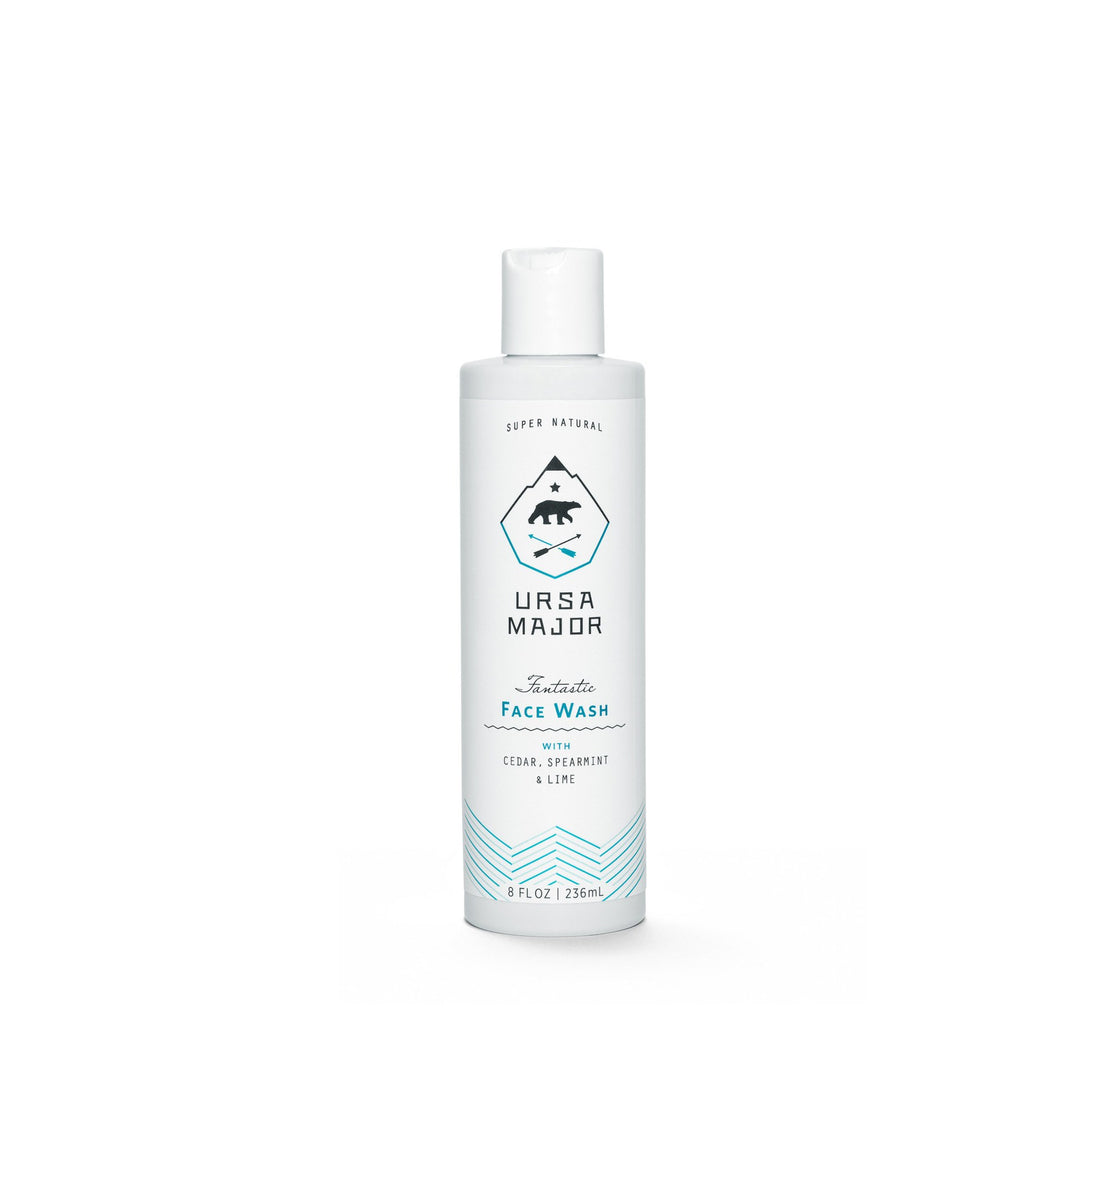 Ursa Major Fantastic Face Wash, 8 oz. - Grooming: Skin - Iron and Resin